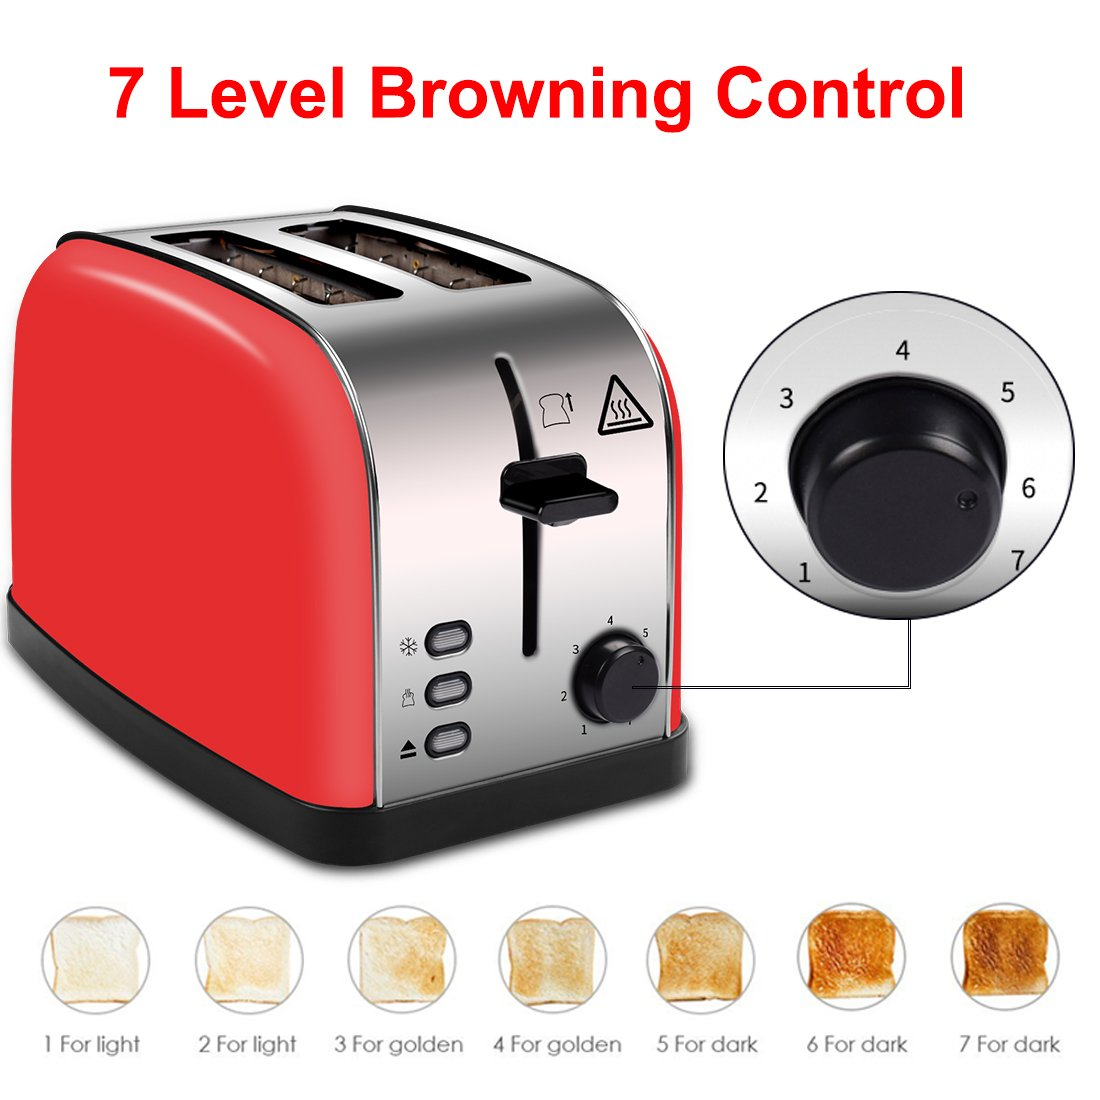 LATITOP Red 2-Slice Toaster Brushed Stainless Steel with Extra Wide Slots, Removable Crumb Tray, Led Indicator, Auto Shut-Off, Toast Browness Setting, High Lift Lever